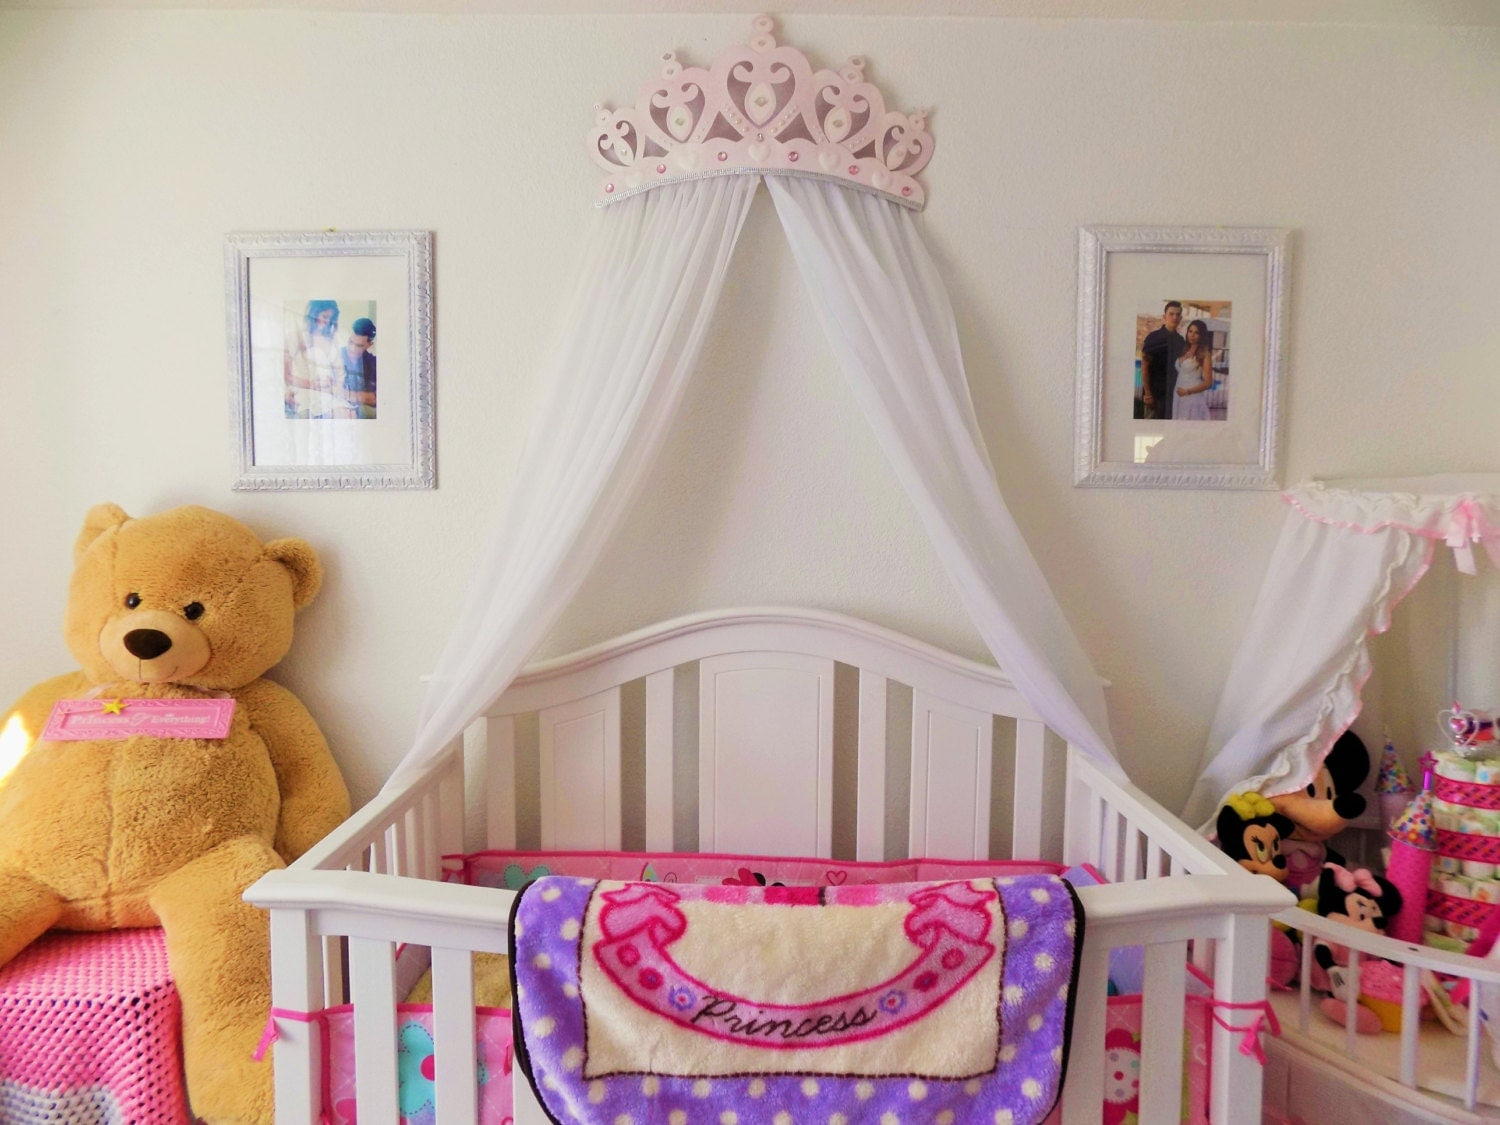 crib canopy bed crown pink princess wall decor